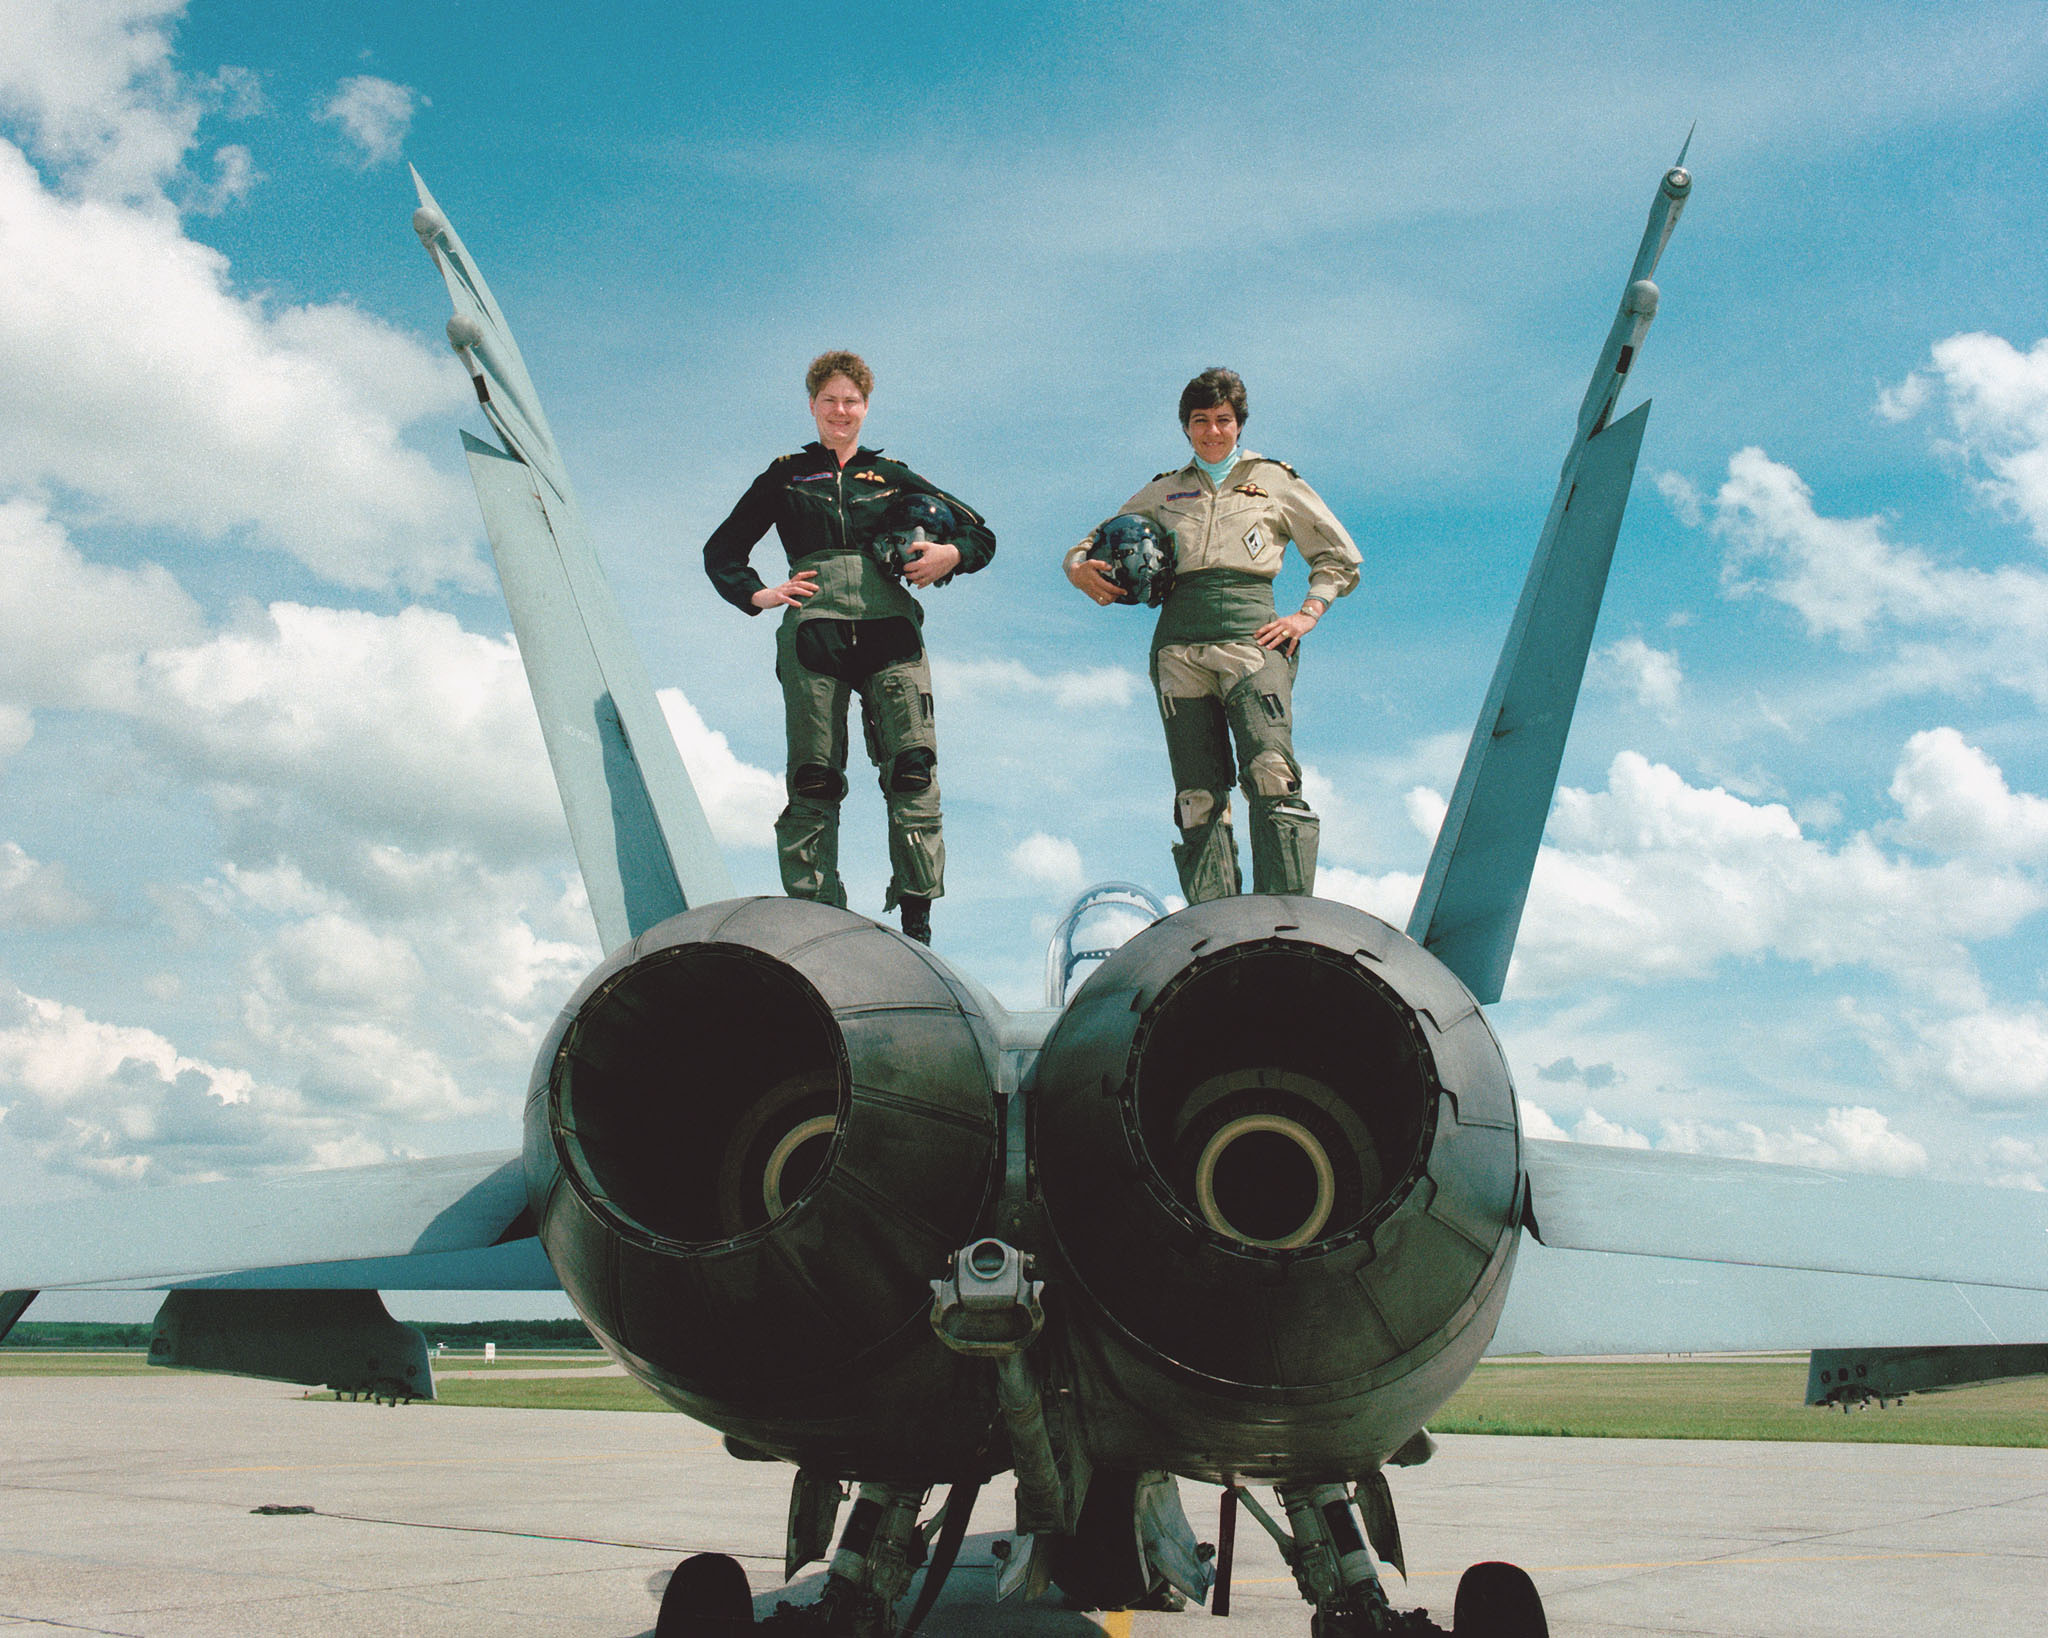 "On June 20, 1989, Captain Jane Foster (left) and Captain Deanna ""Dee"" Brasseur stand atop a CF-188 Hornet fighter jet. According to the original caption of this photo, they were at that time the only two women in the world flying fighter jets in operational squadrons. In 1979, Captain Brasseur, Captain Leah Mosher and Captain Nora Bottomley had become the first women in the Canadian Armed Forces to earn their pilots' wings after the occupation opened to women. PHOTO: CKC89-3773, DND Archives"